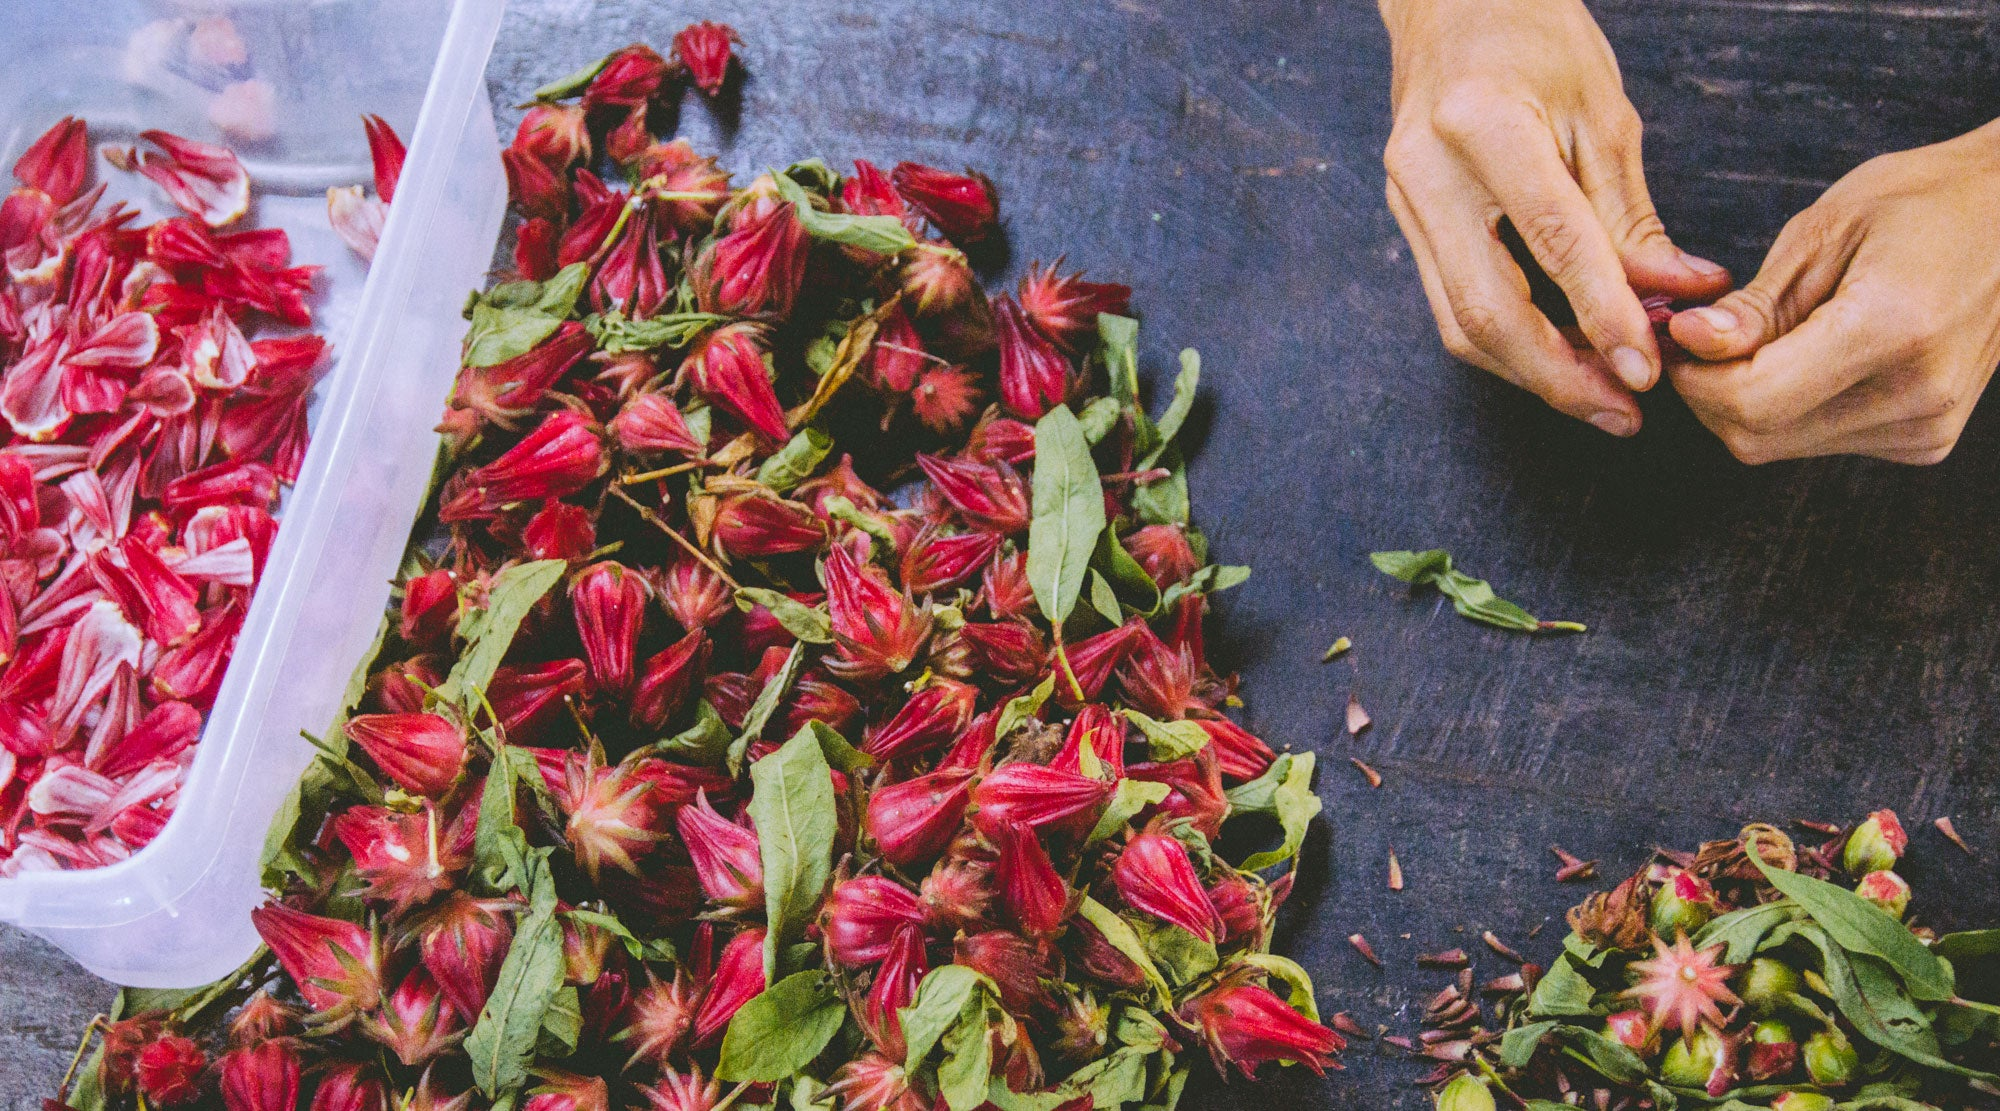 DIY: FLORAL DYEING WITH HIBISCUS PETALS